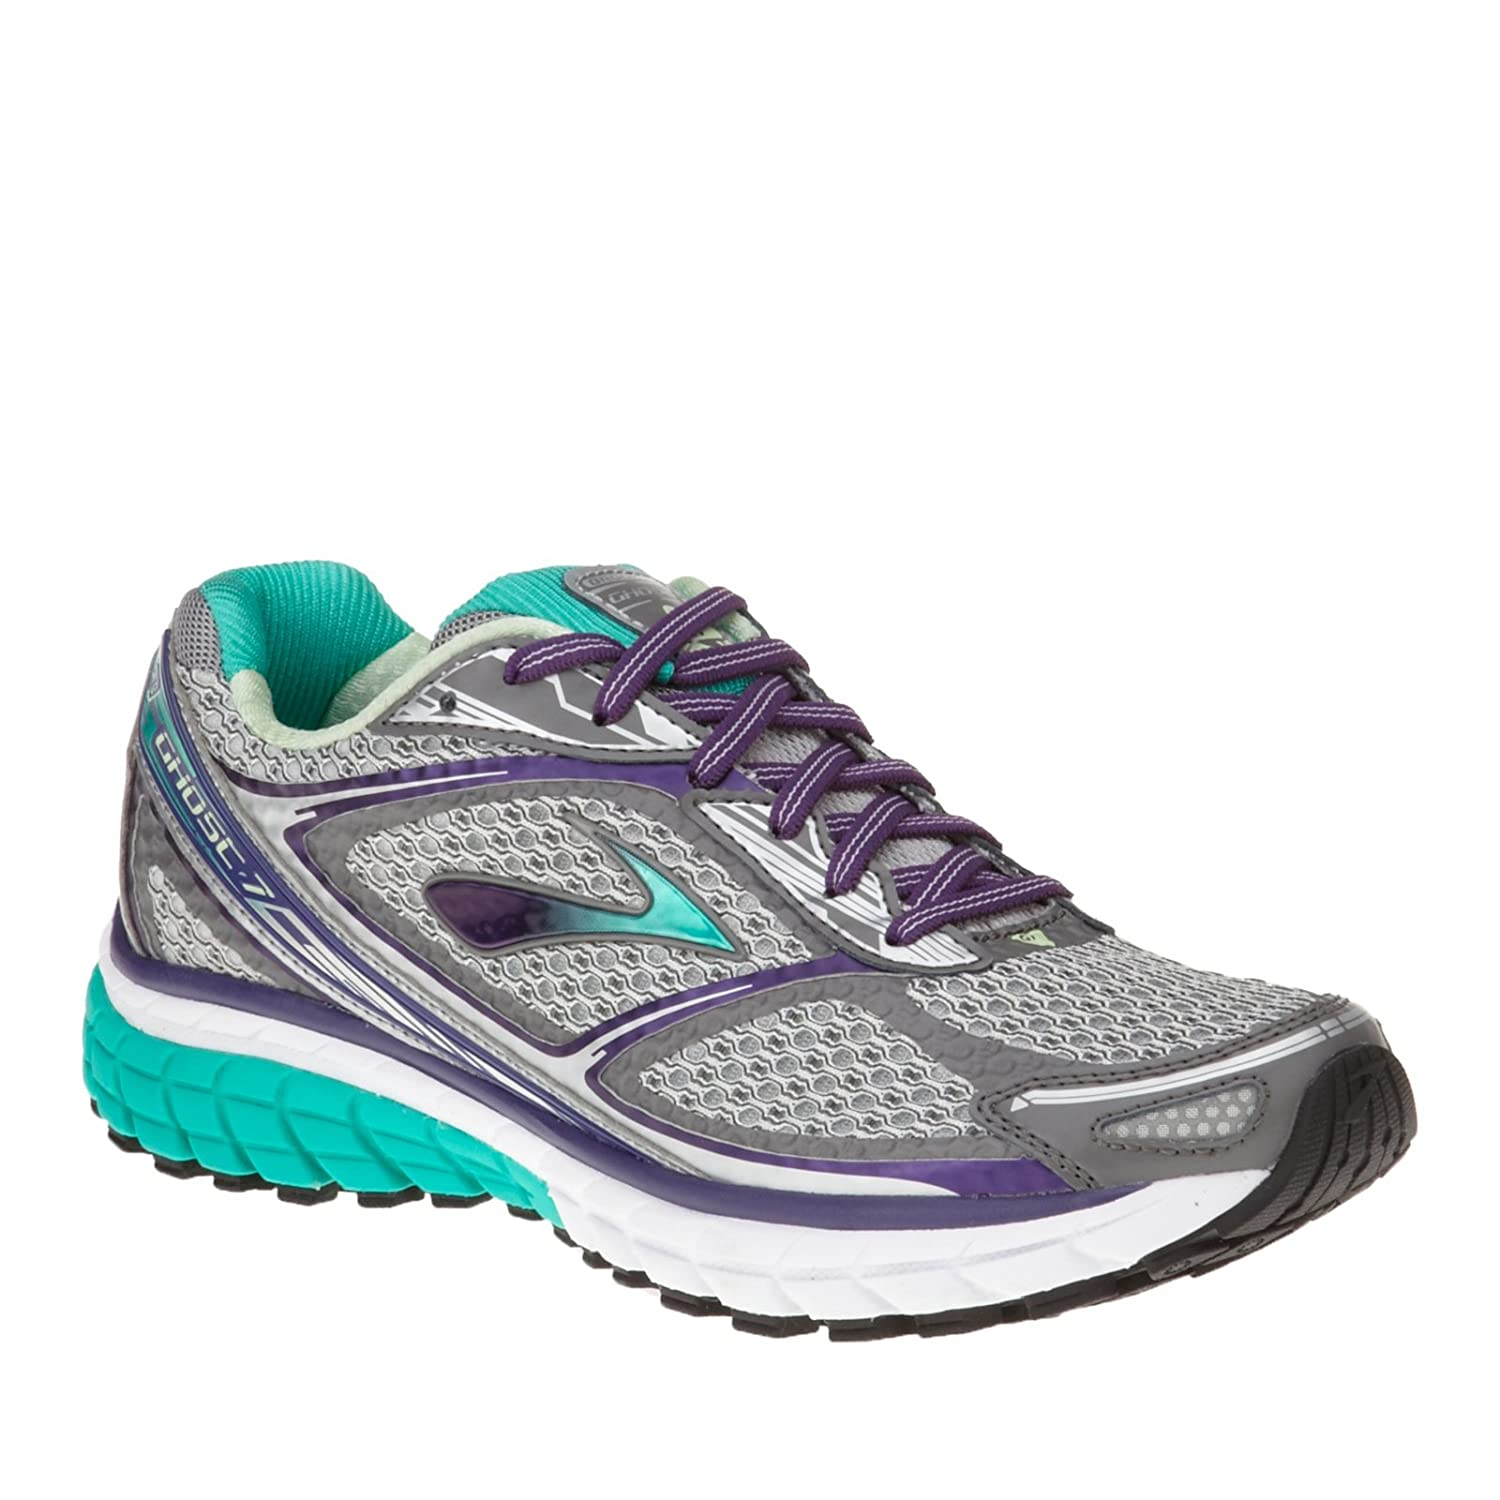 54ee80ae24c 30%OFF Women s Brooks Ghost 7 Running Shoe - url.ellen.li